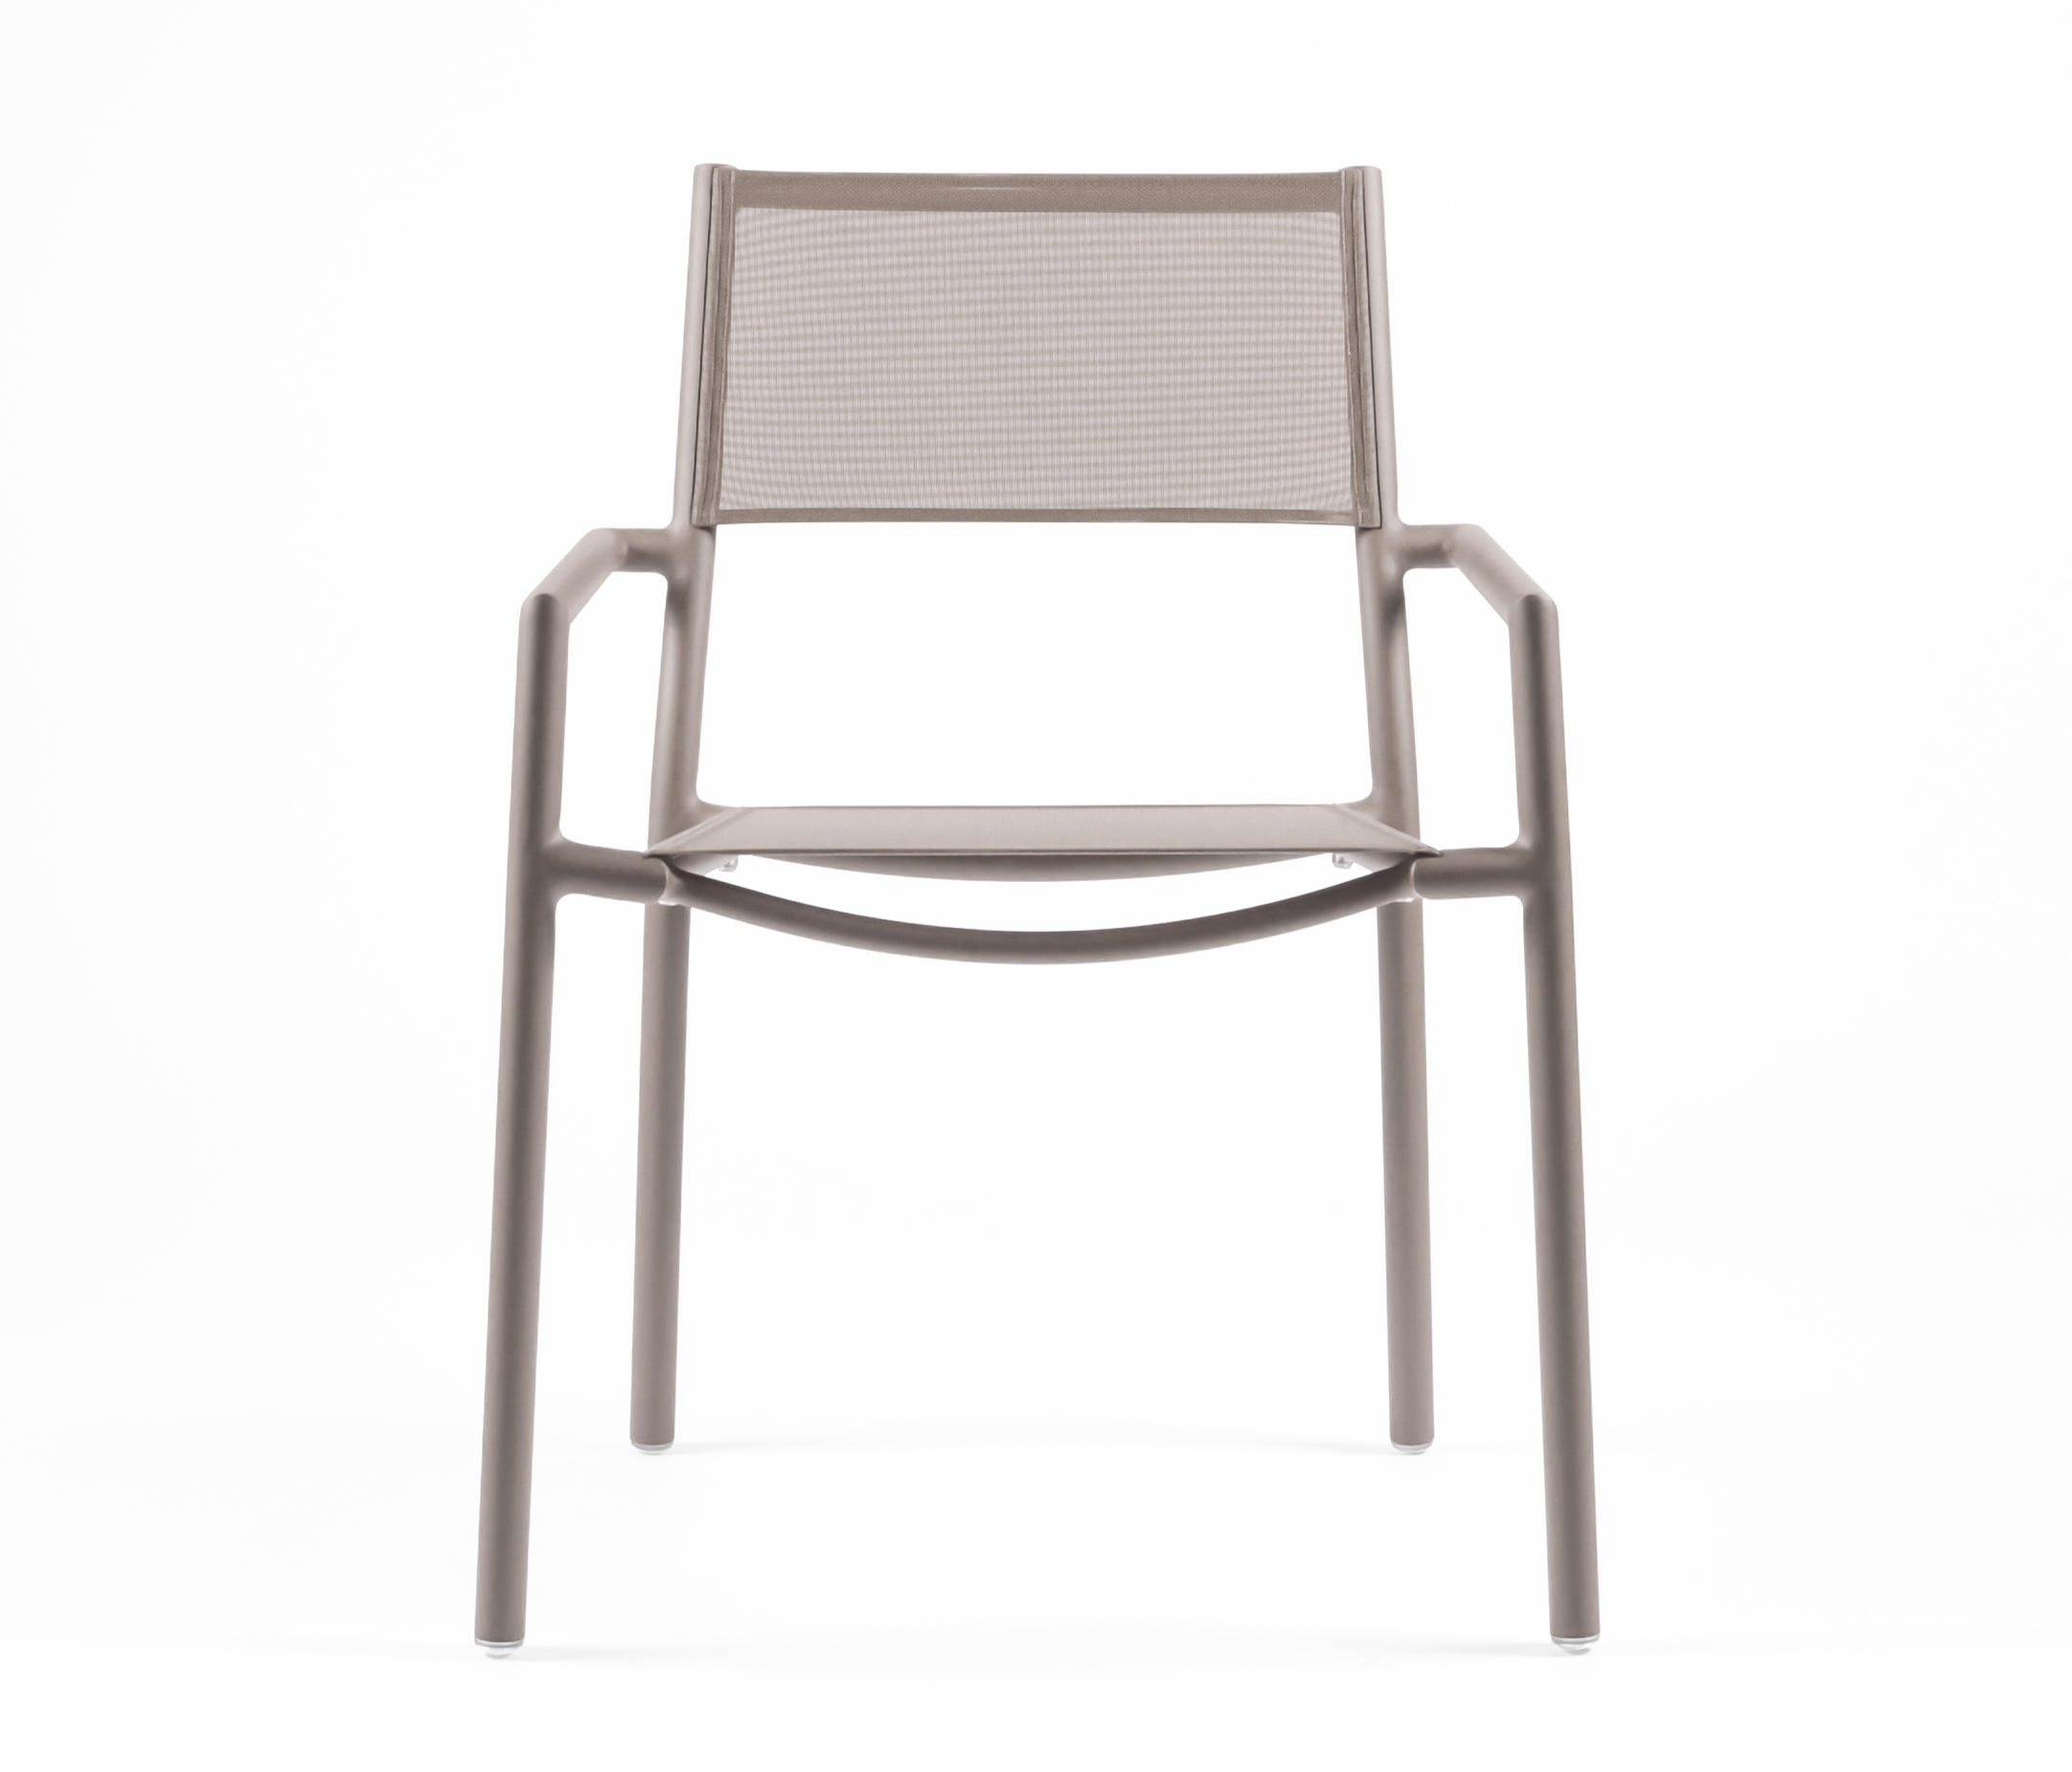 NC8526 ARMCHAIR - Garden chairs from Maiori Design | Architonic